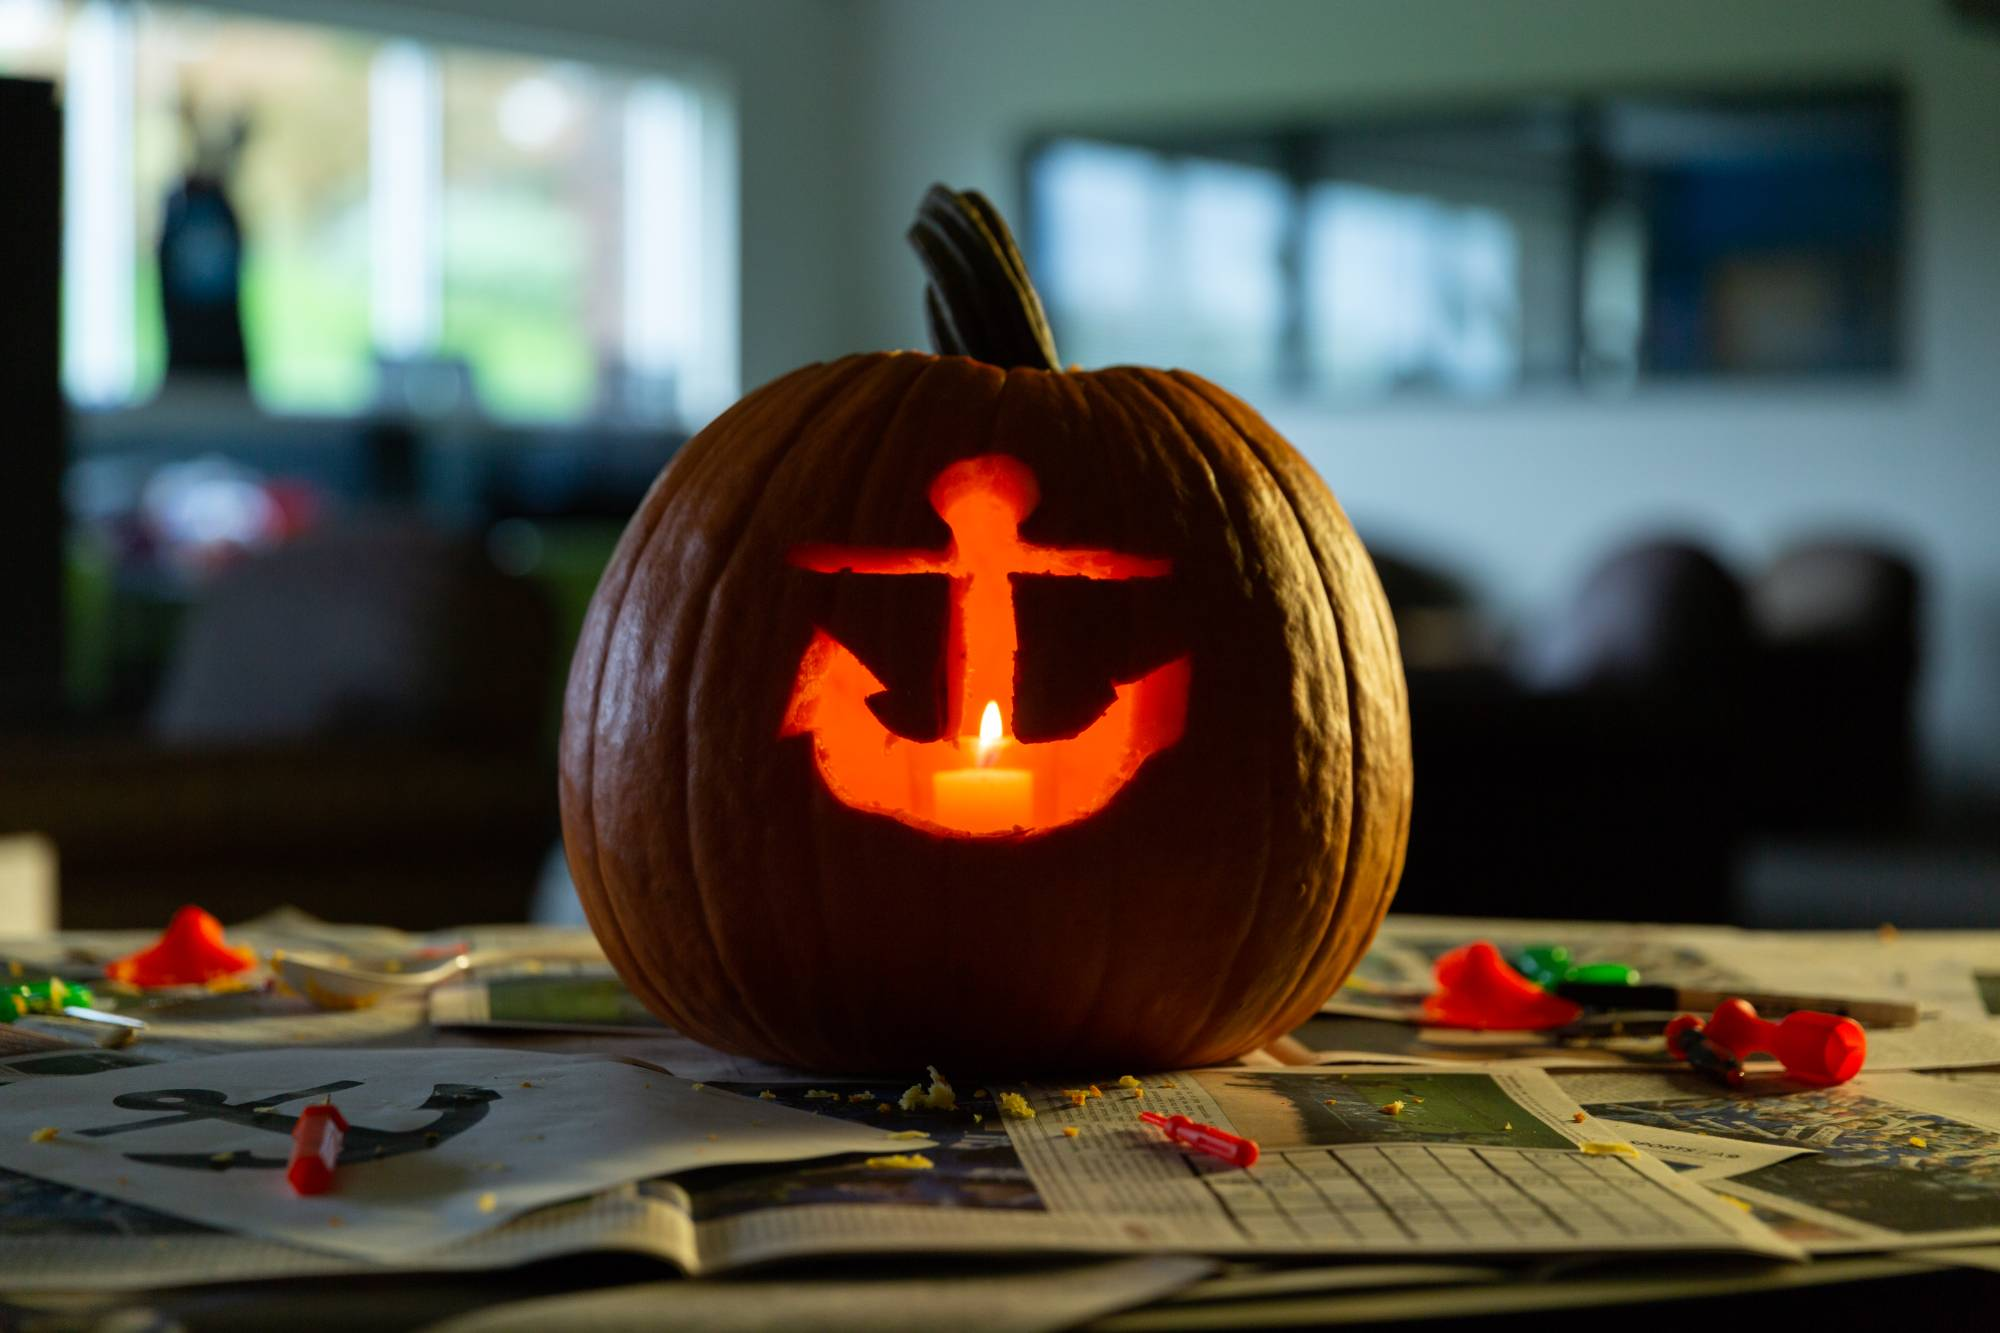 Pumpkin carved with anchor